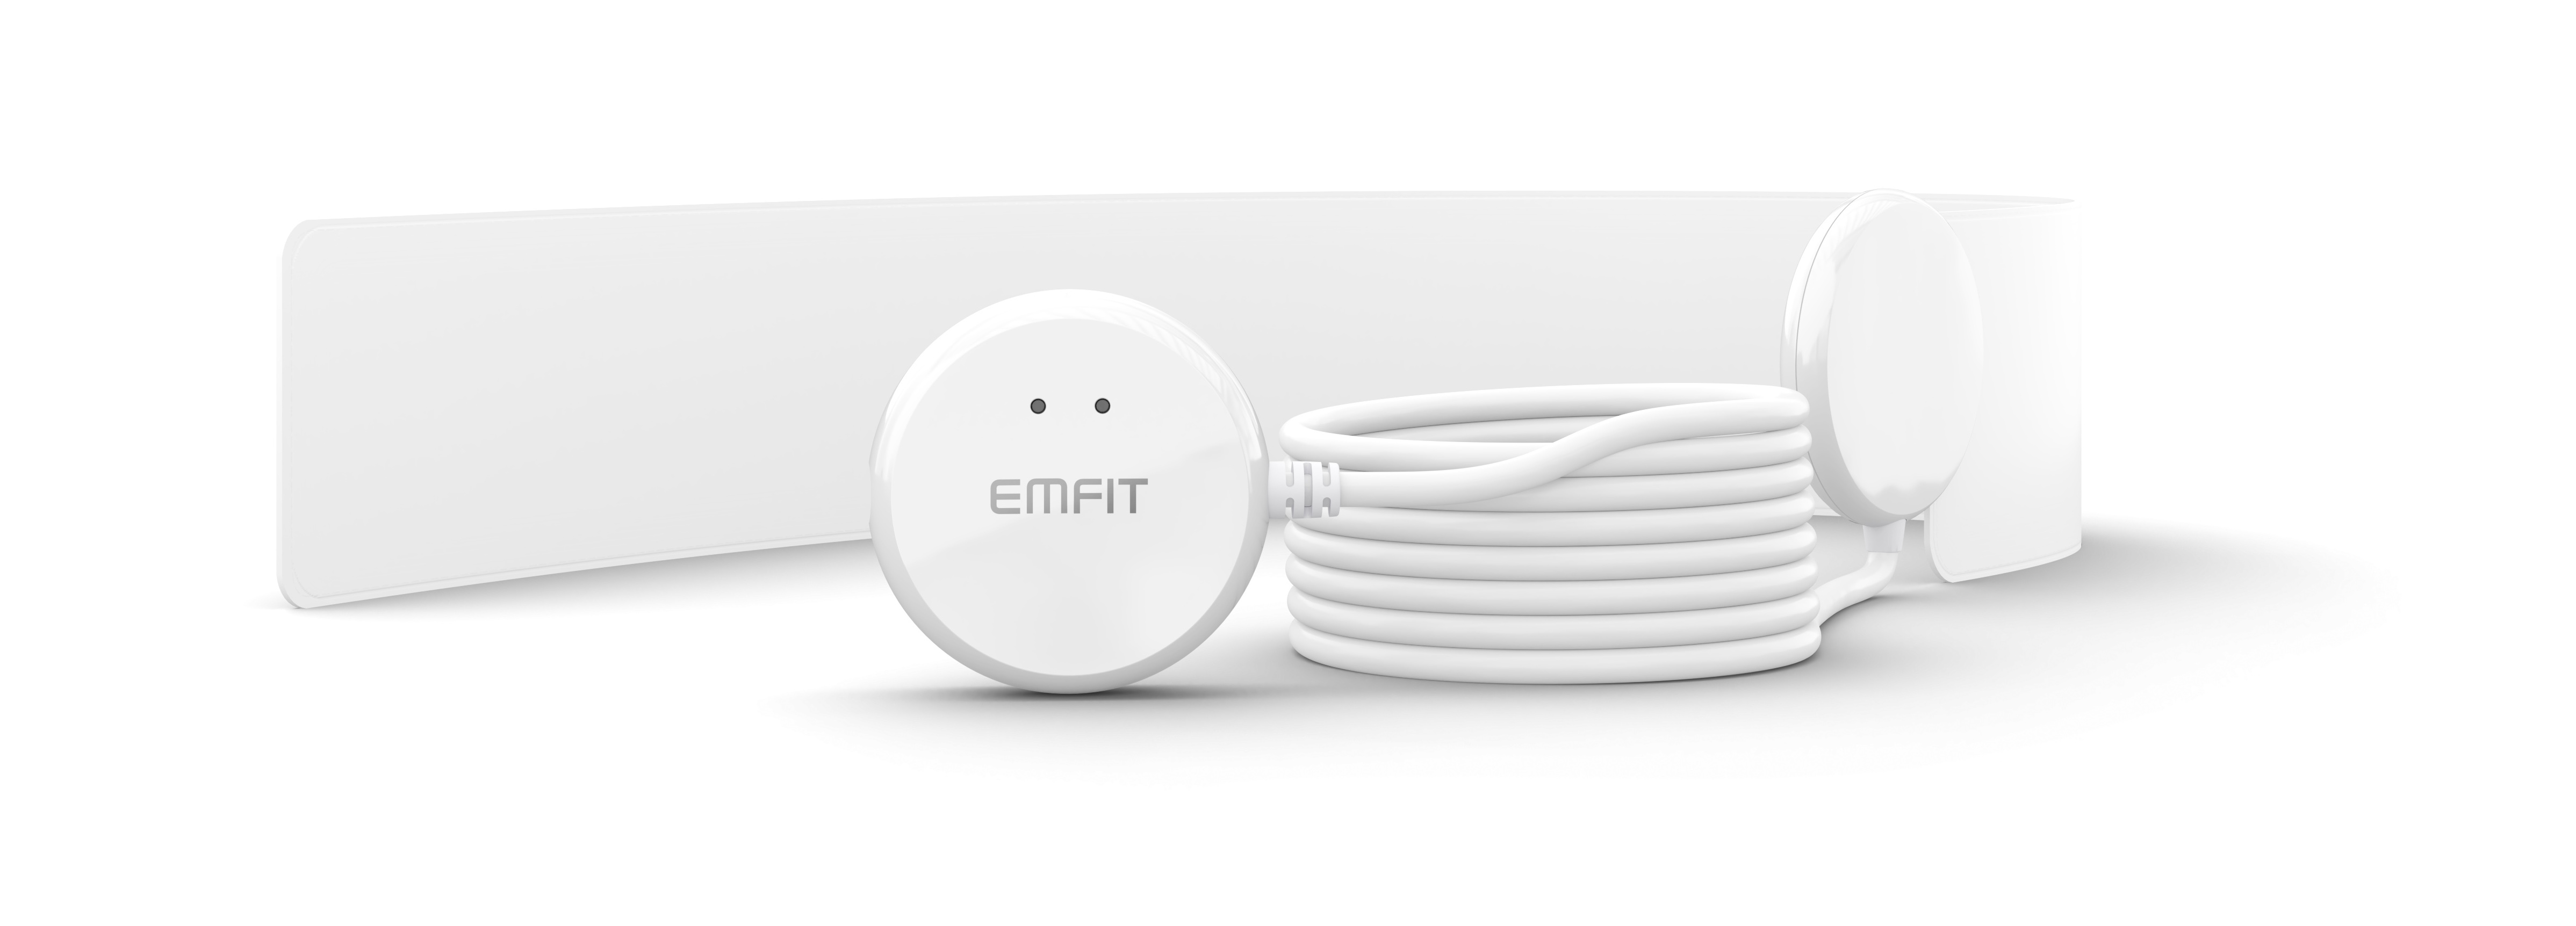 Emfit QS sleep tracker and bed occupancy monitor